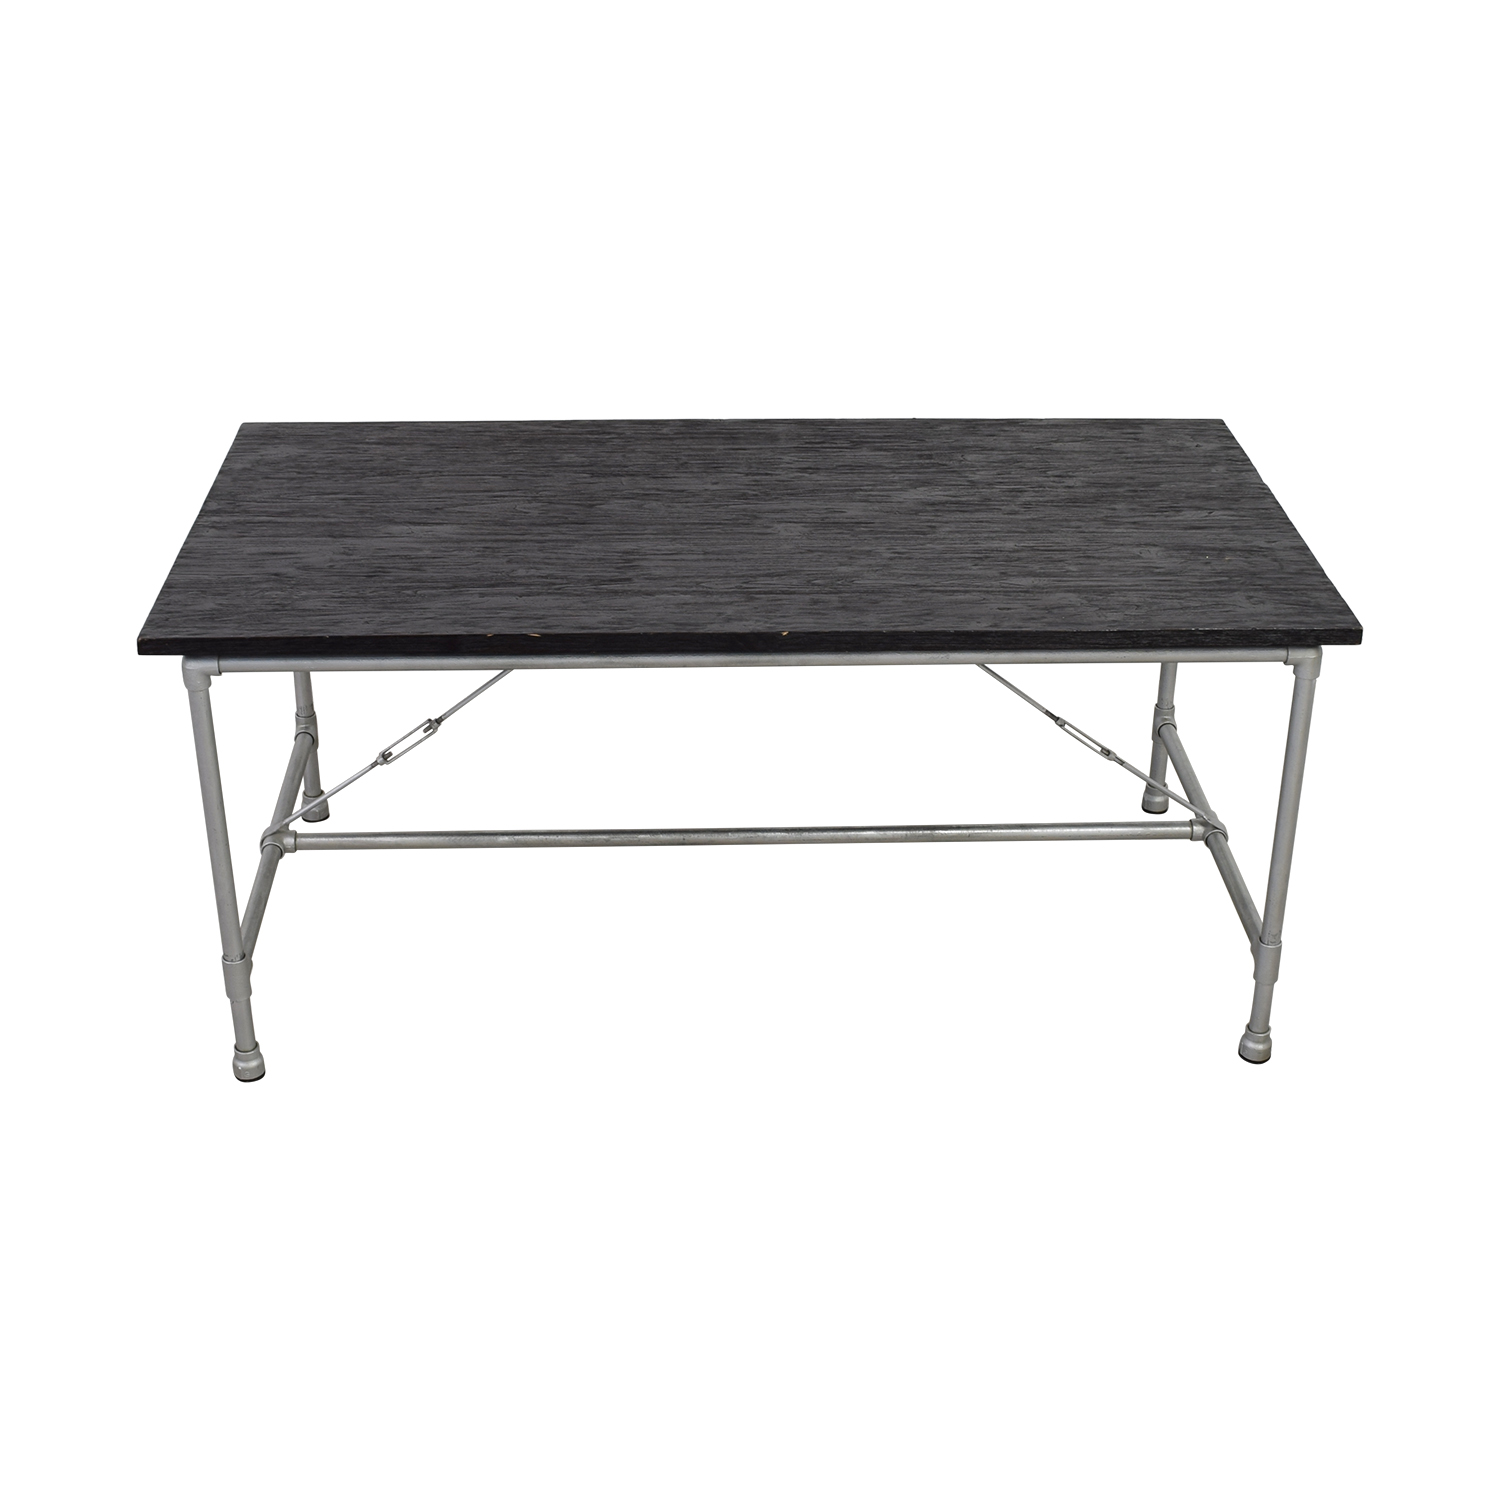 ABC Carpet & Home ABC Carpet & Home Black and Steel Table nyc